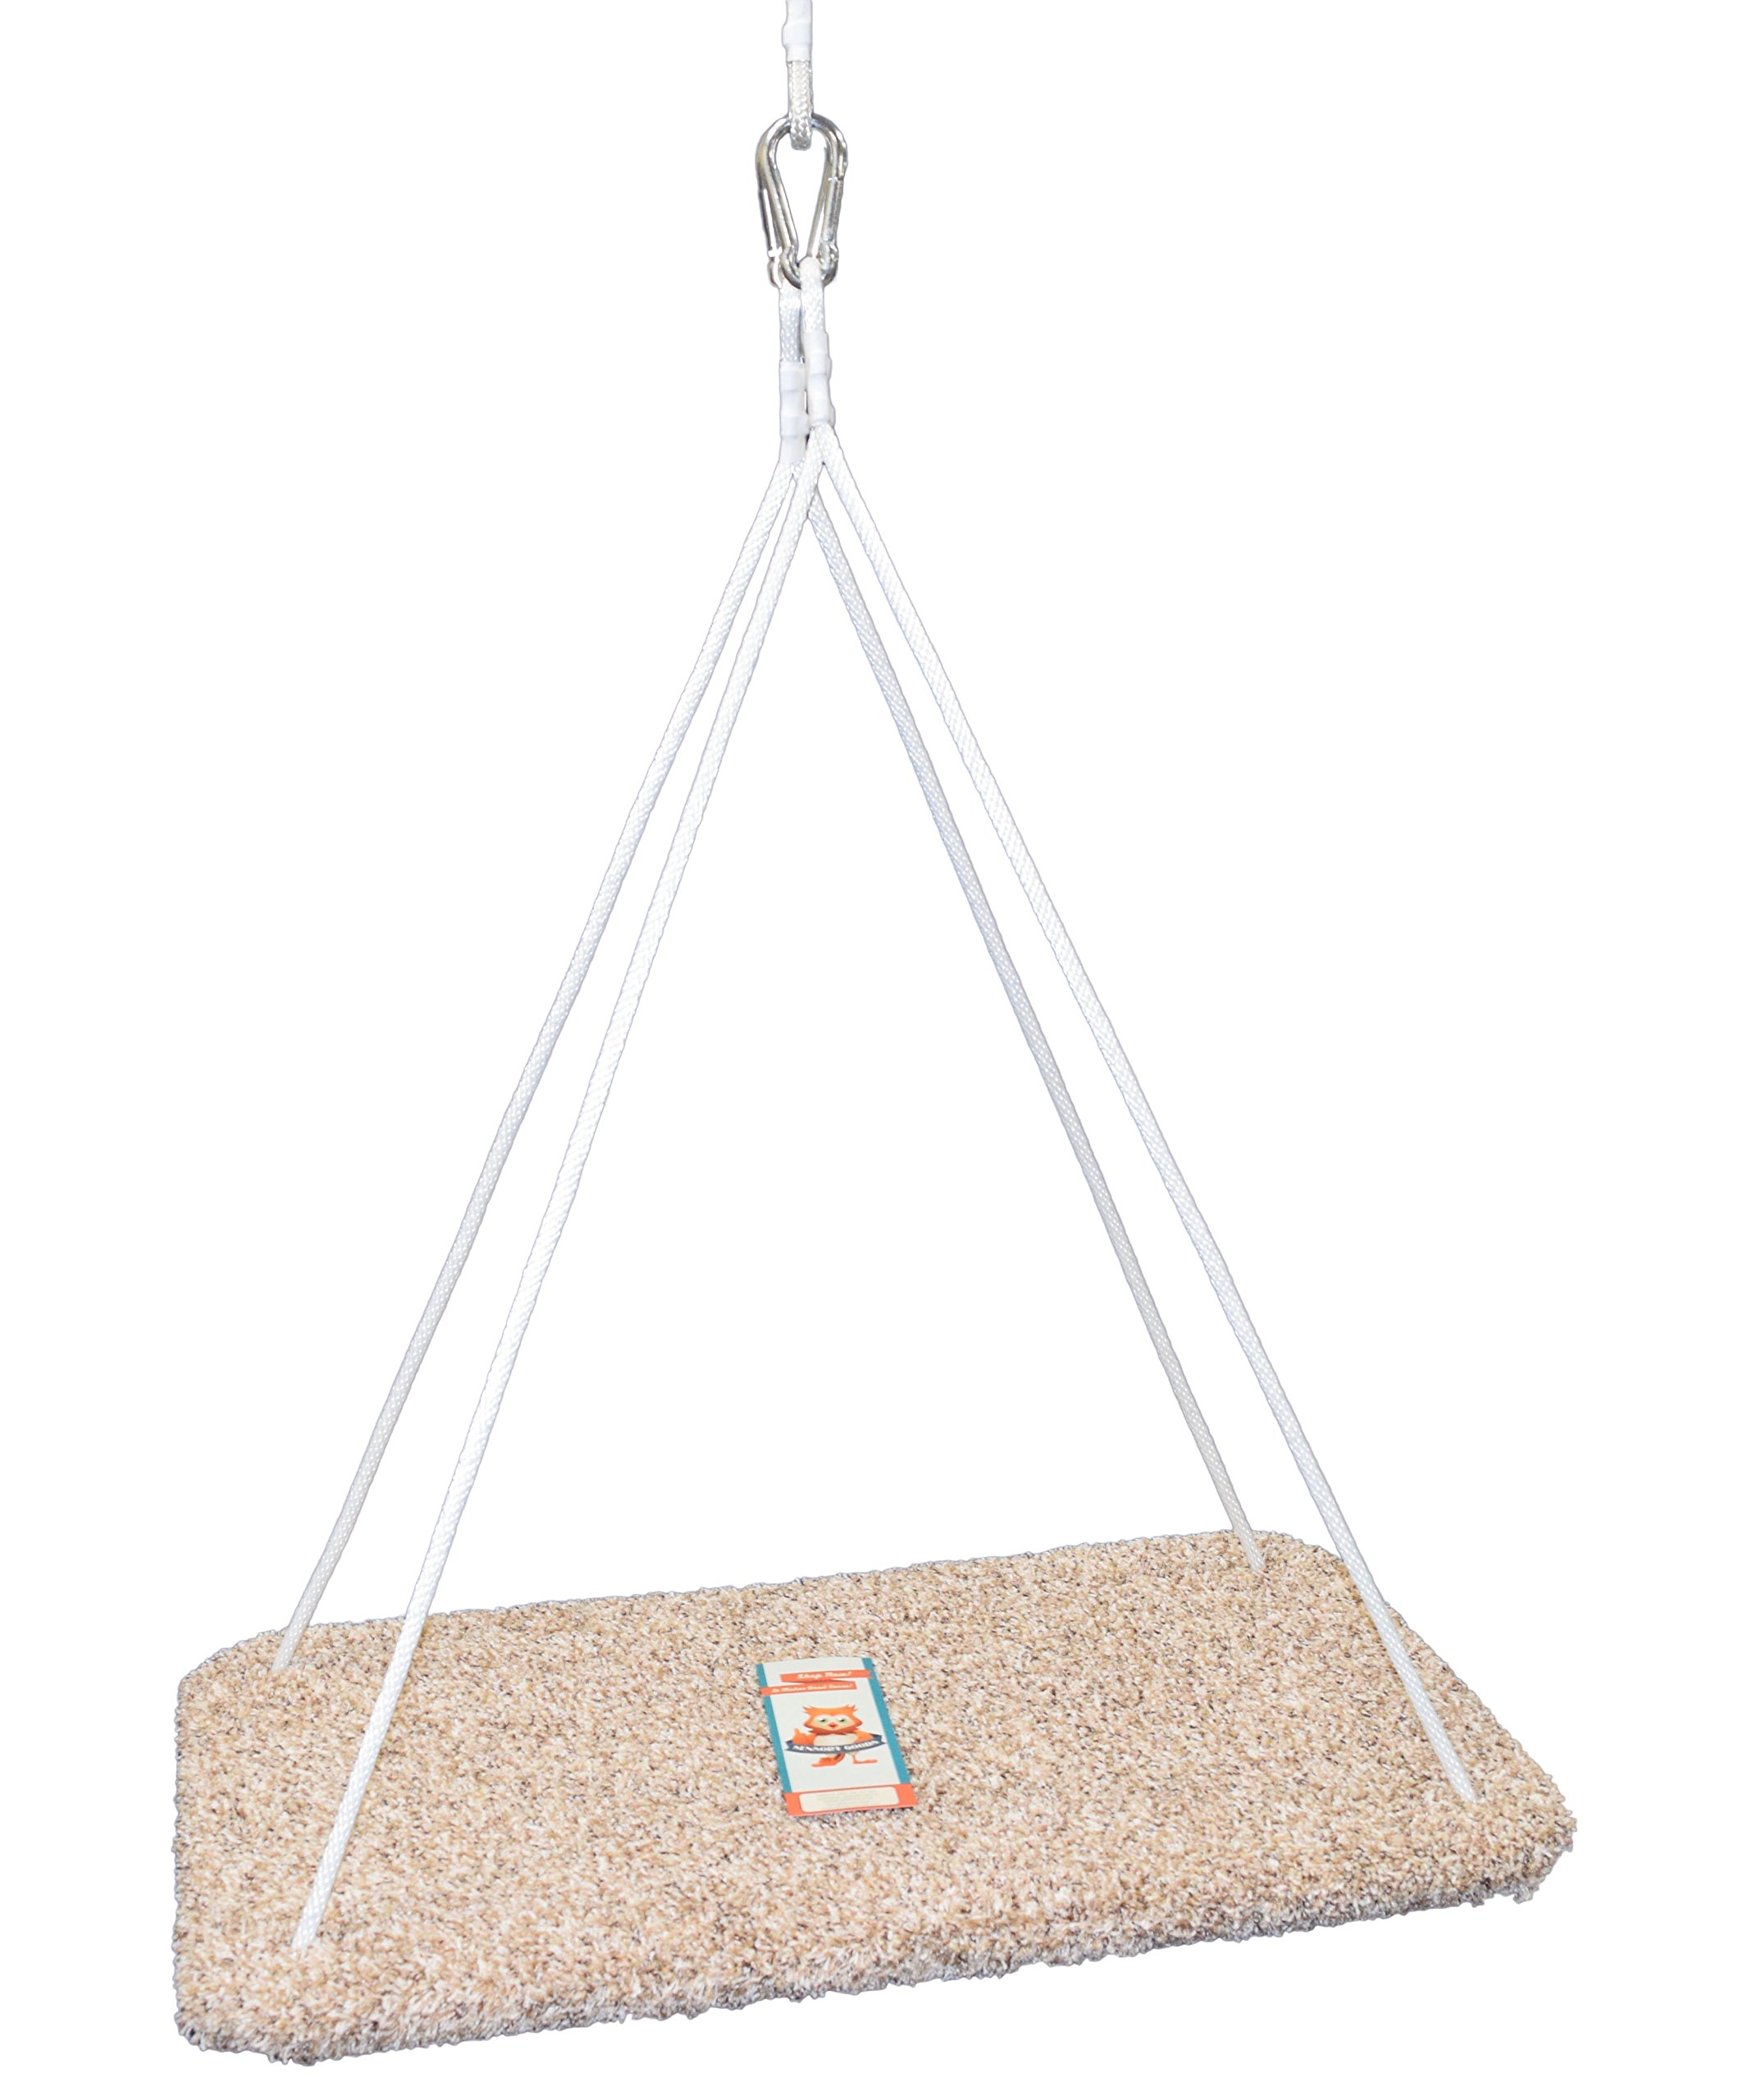 Platform Swing (Rectangle) - Special Need Therapy Use - Hand-Crafted from 100% Baltic Birch - Carpeted - 19'' X 37'' by Sensory Goods